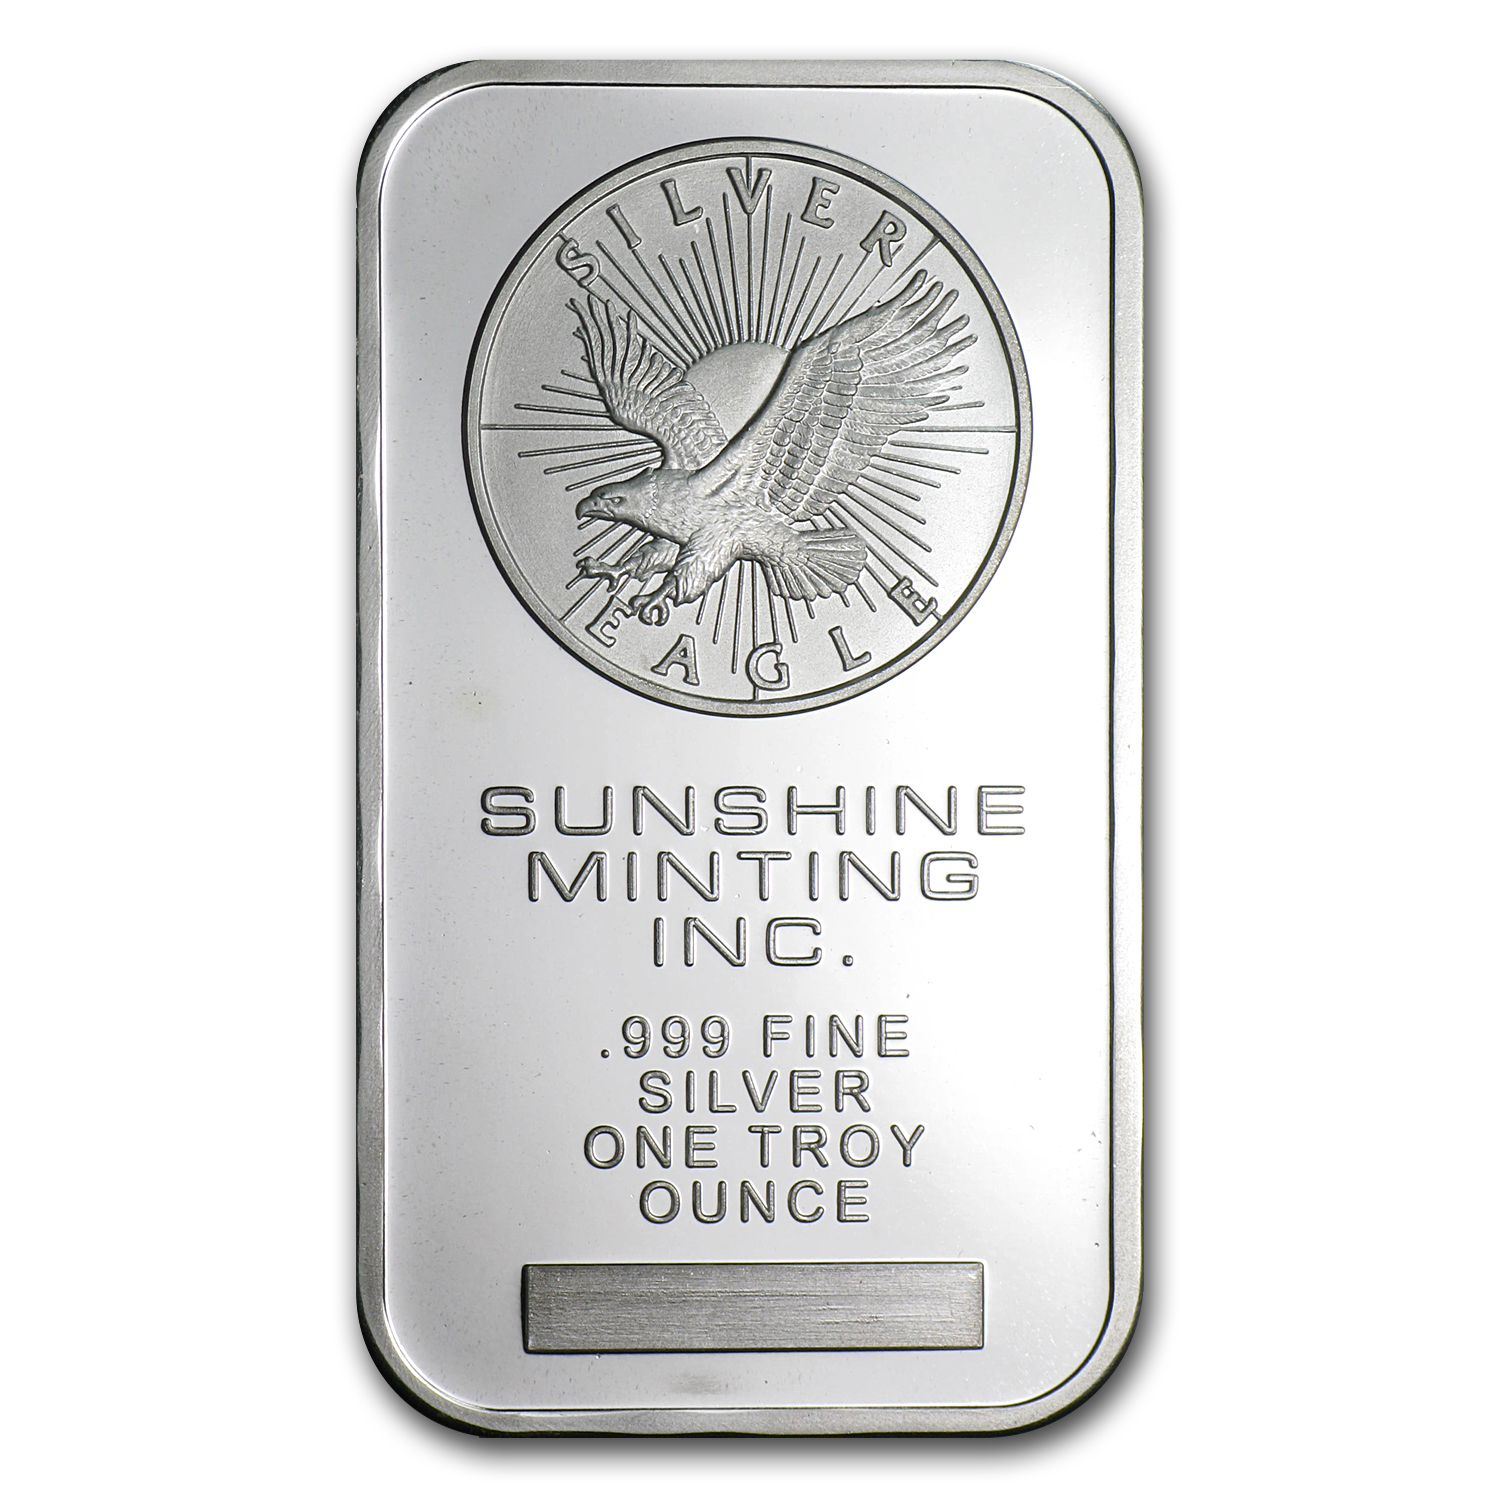 1 oz Silver Bar - Sunshine (Original)